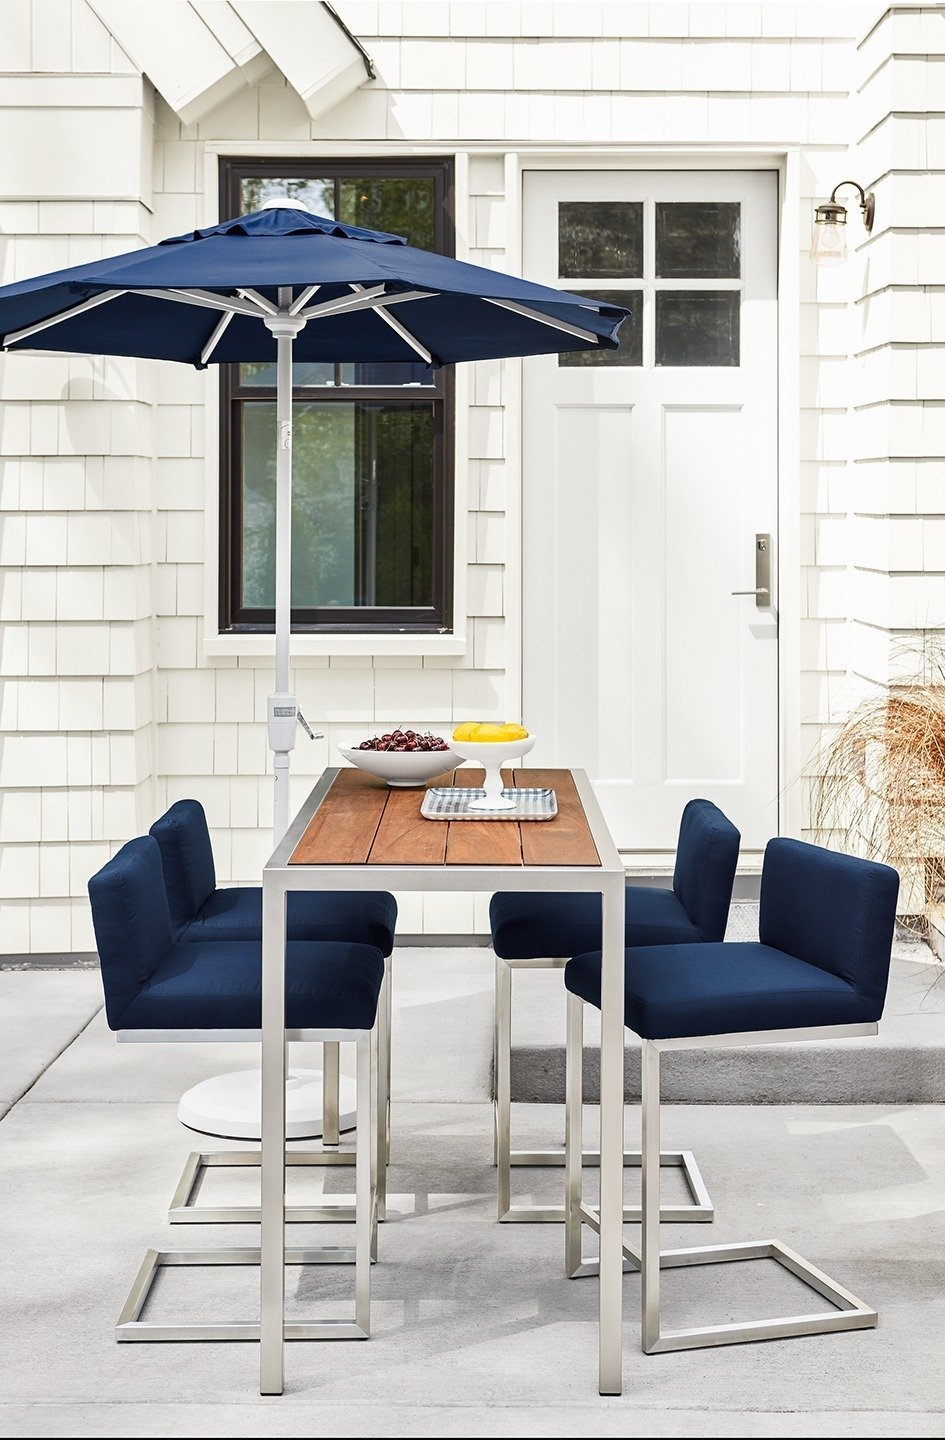 Montego counter table, Finn counter stools, Maui umbrella Tagged: Outdoor, Concrete Patio, Porch, Deck, and Back Yard. Expert Design Advice: Outdoor Dining Spaces - Photo 6 of 8